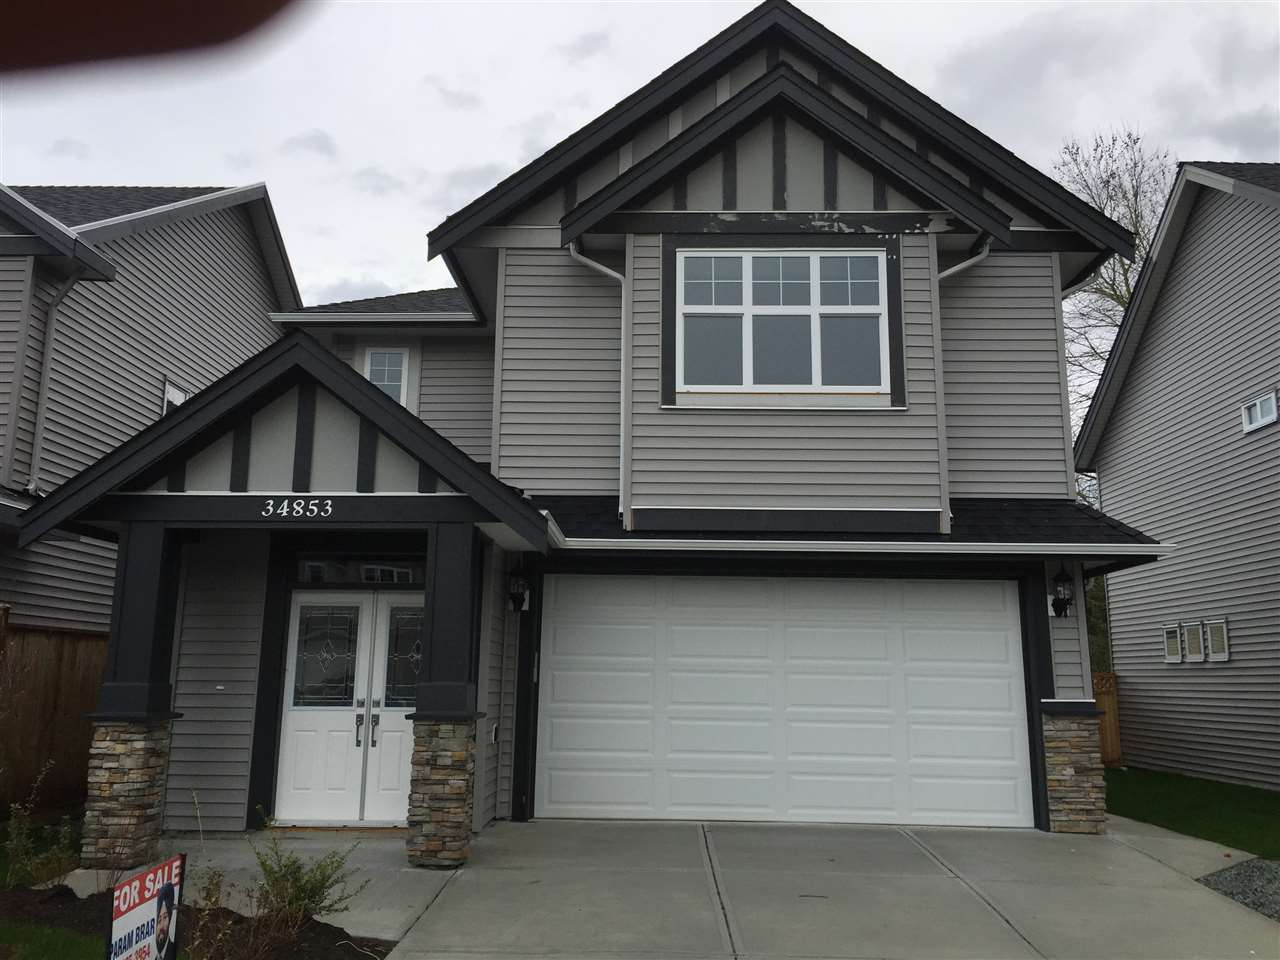 Main Photo: 34853 MCMILLAN Place in Abbotsford: Abbotsford East House for sale : MLS® # R2153122